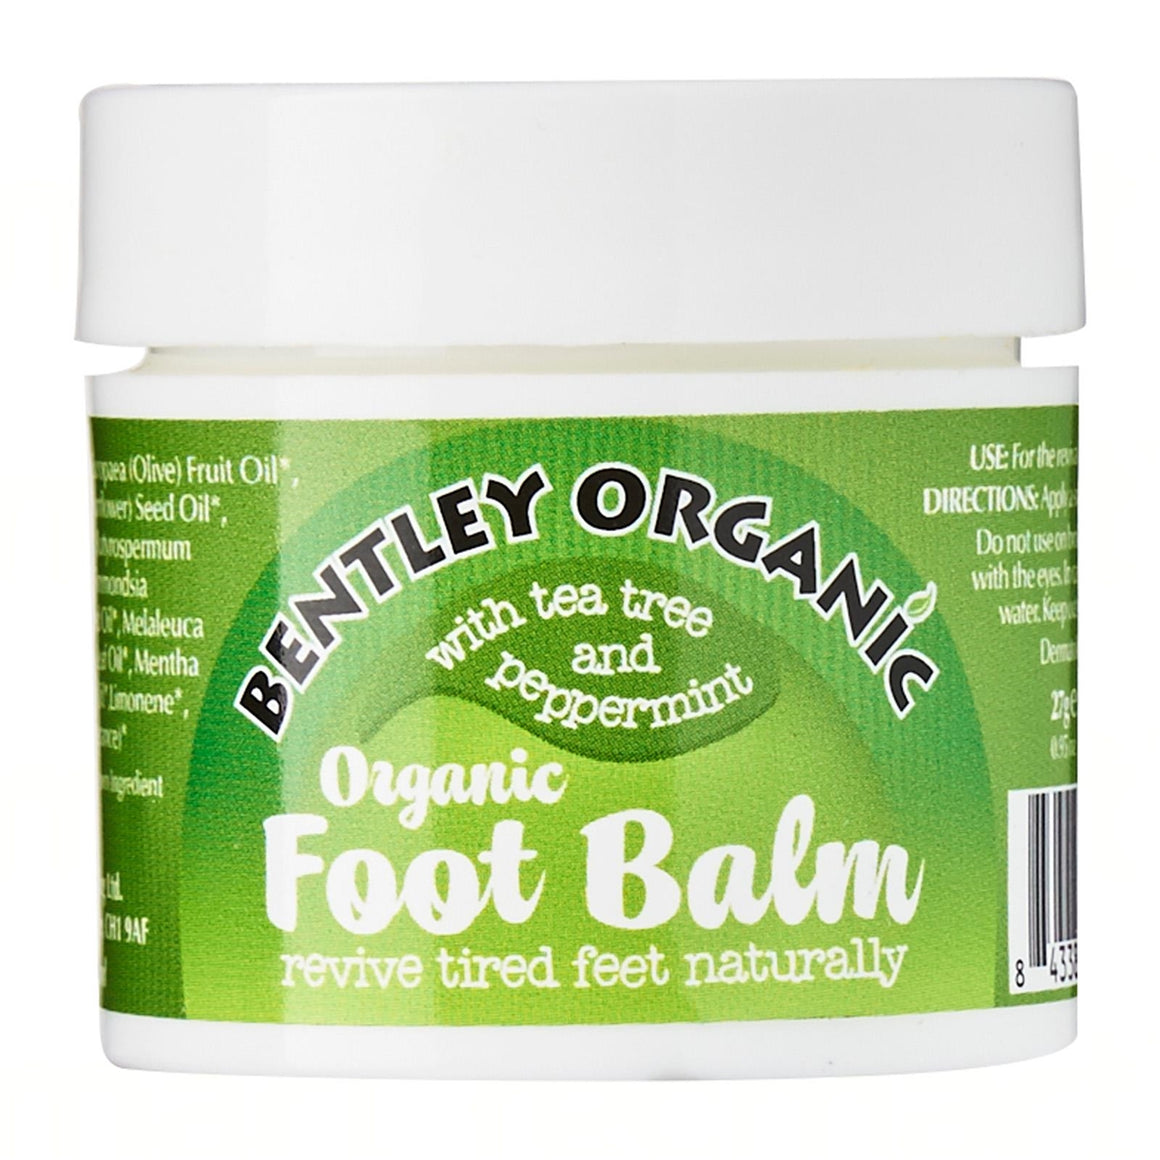 Foot Balm - Aldha